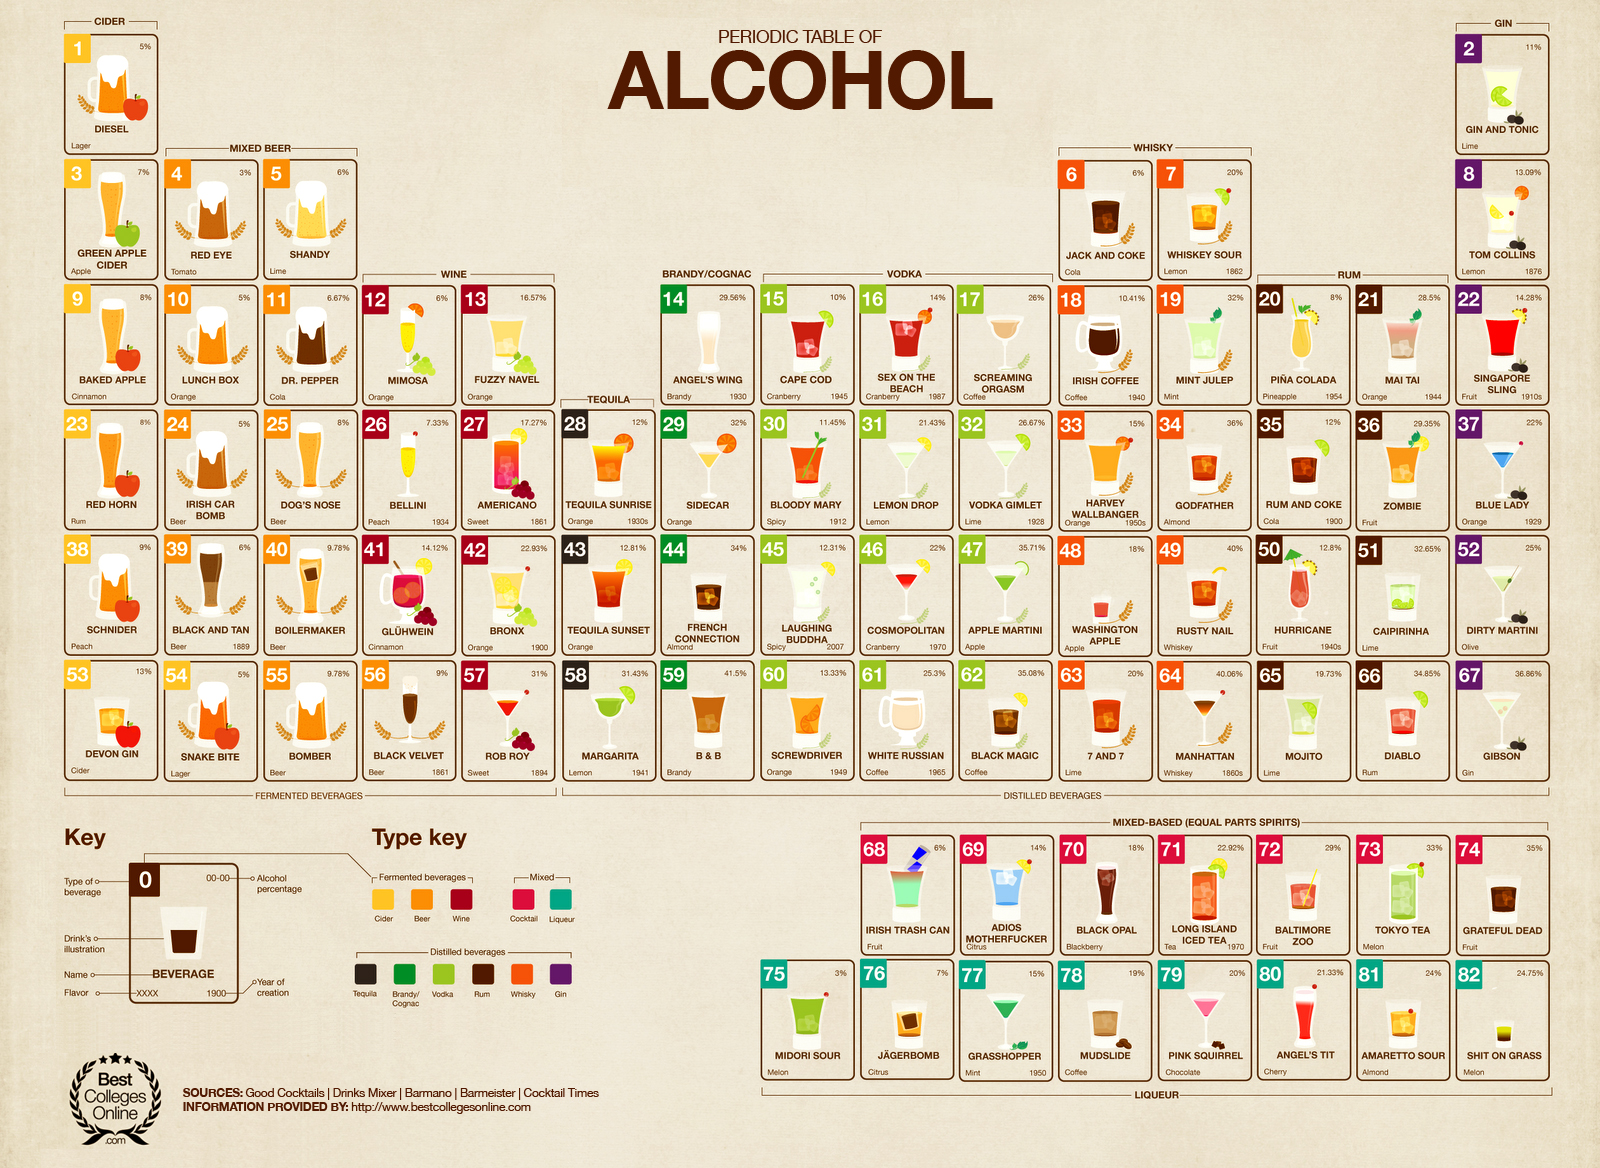 3016436-slide-periodic-table-of-alcohol